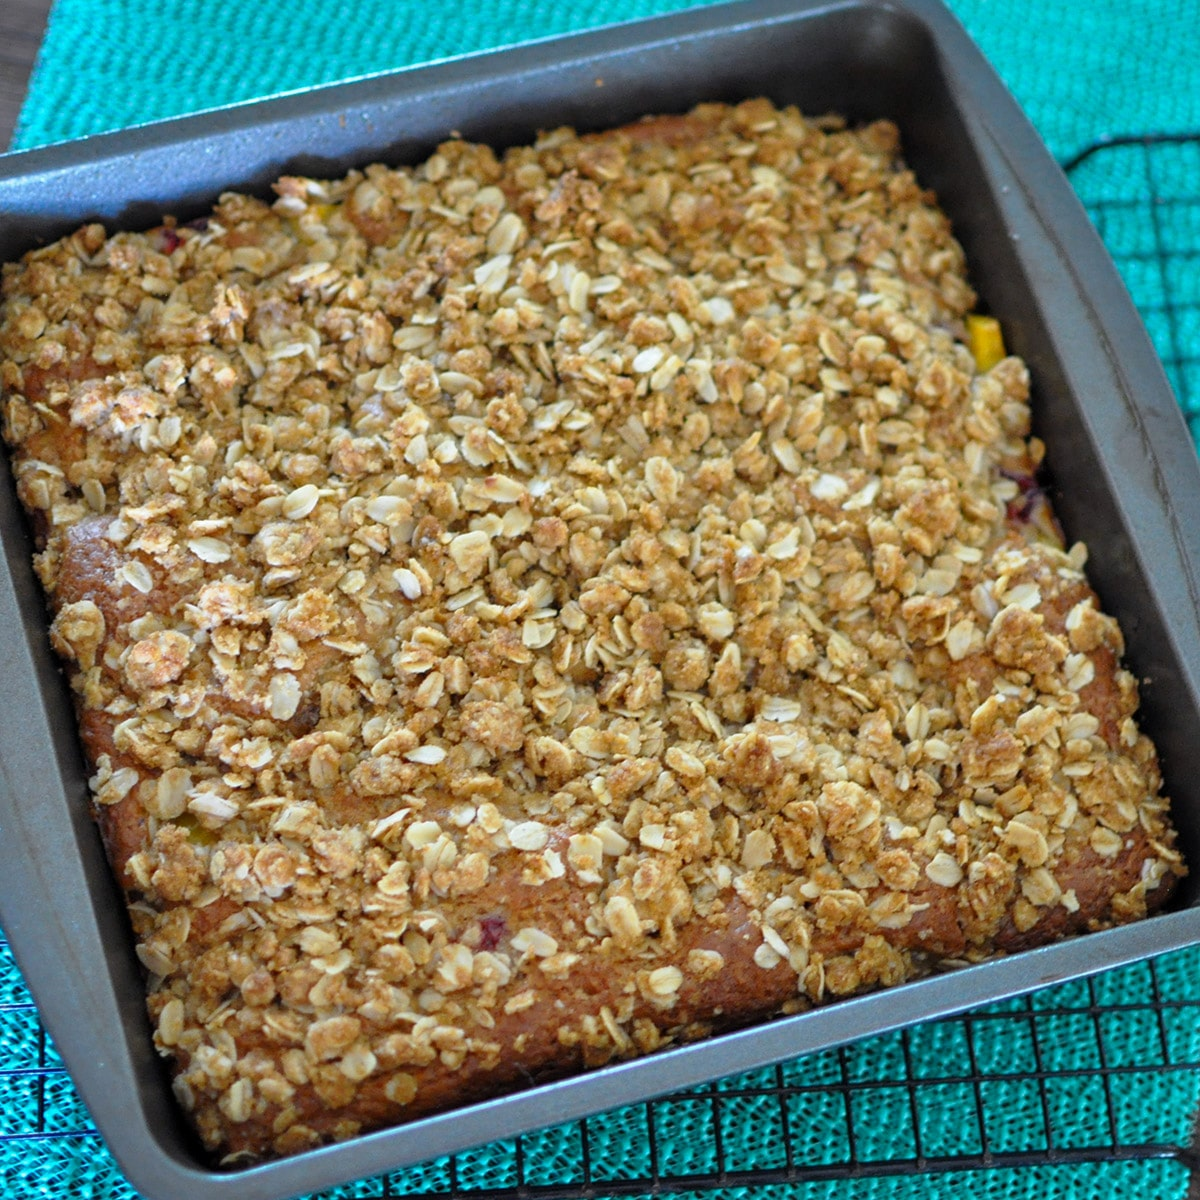 fresh baked coffee cake in a baking pan